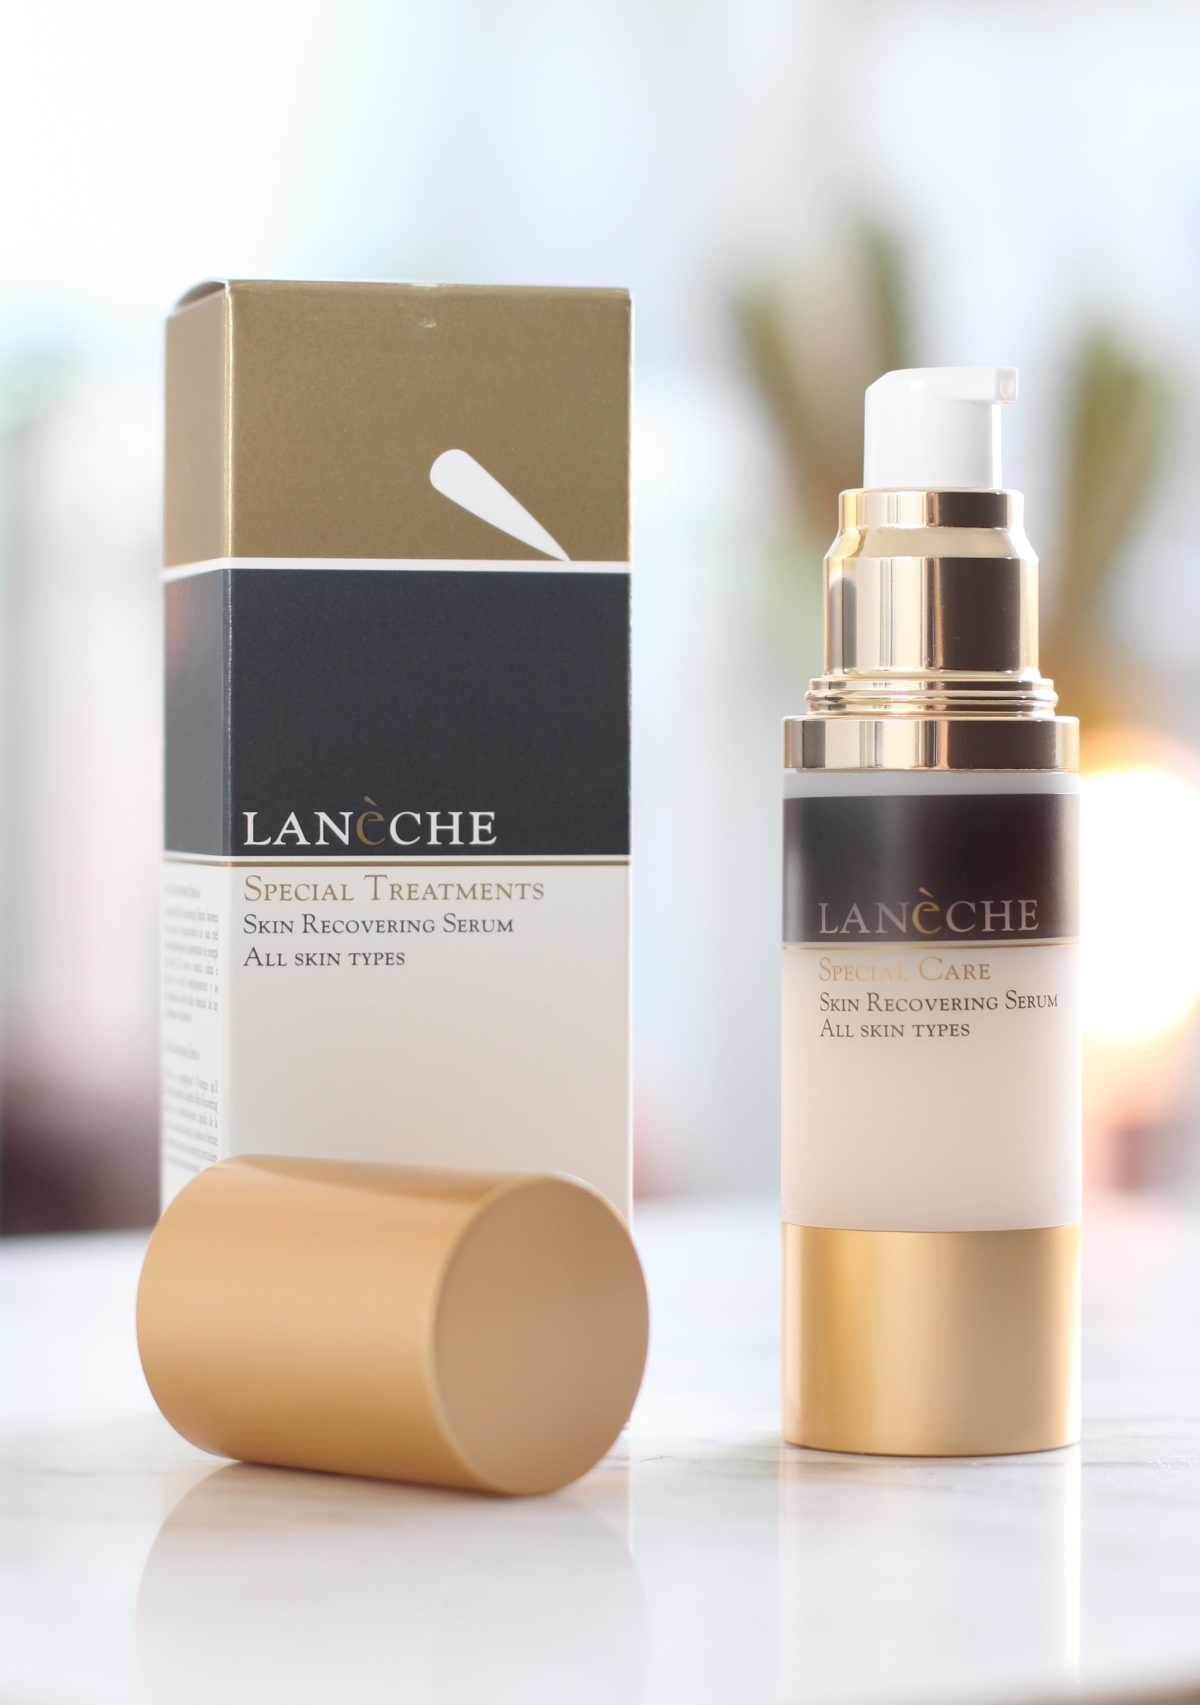 Lanèche special treatments skin recovering serum